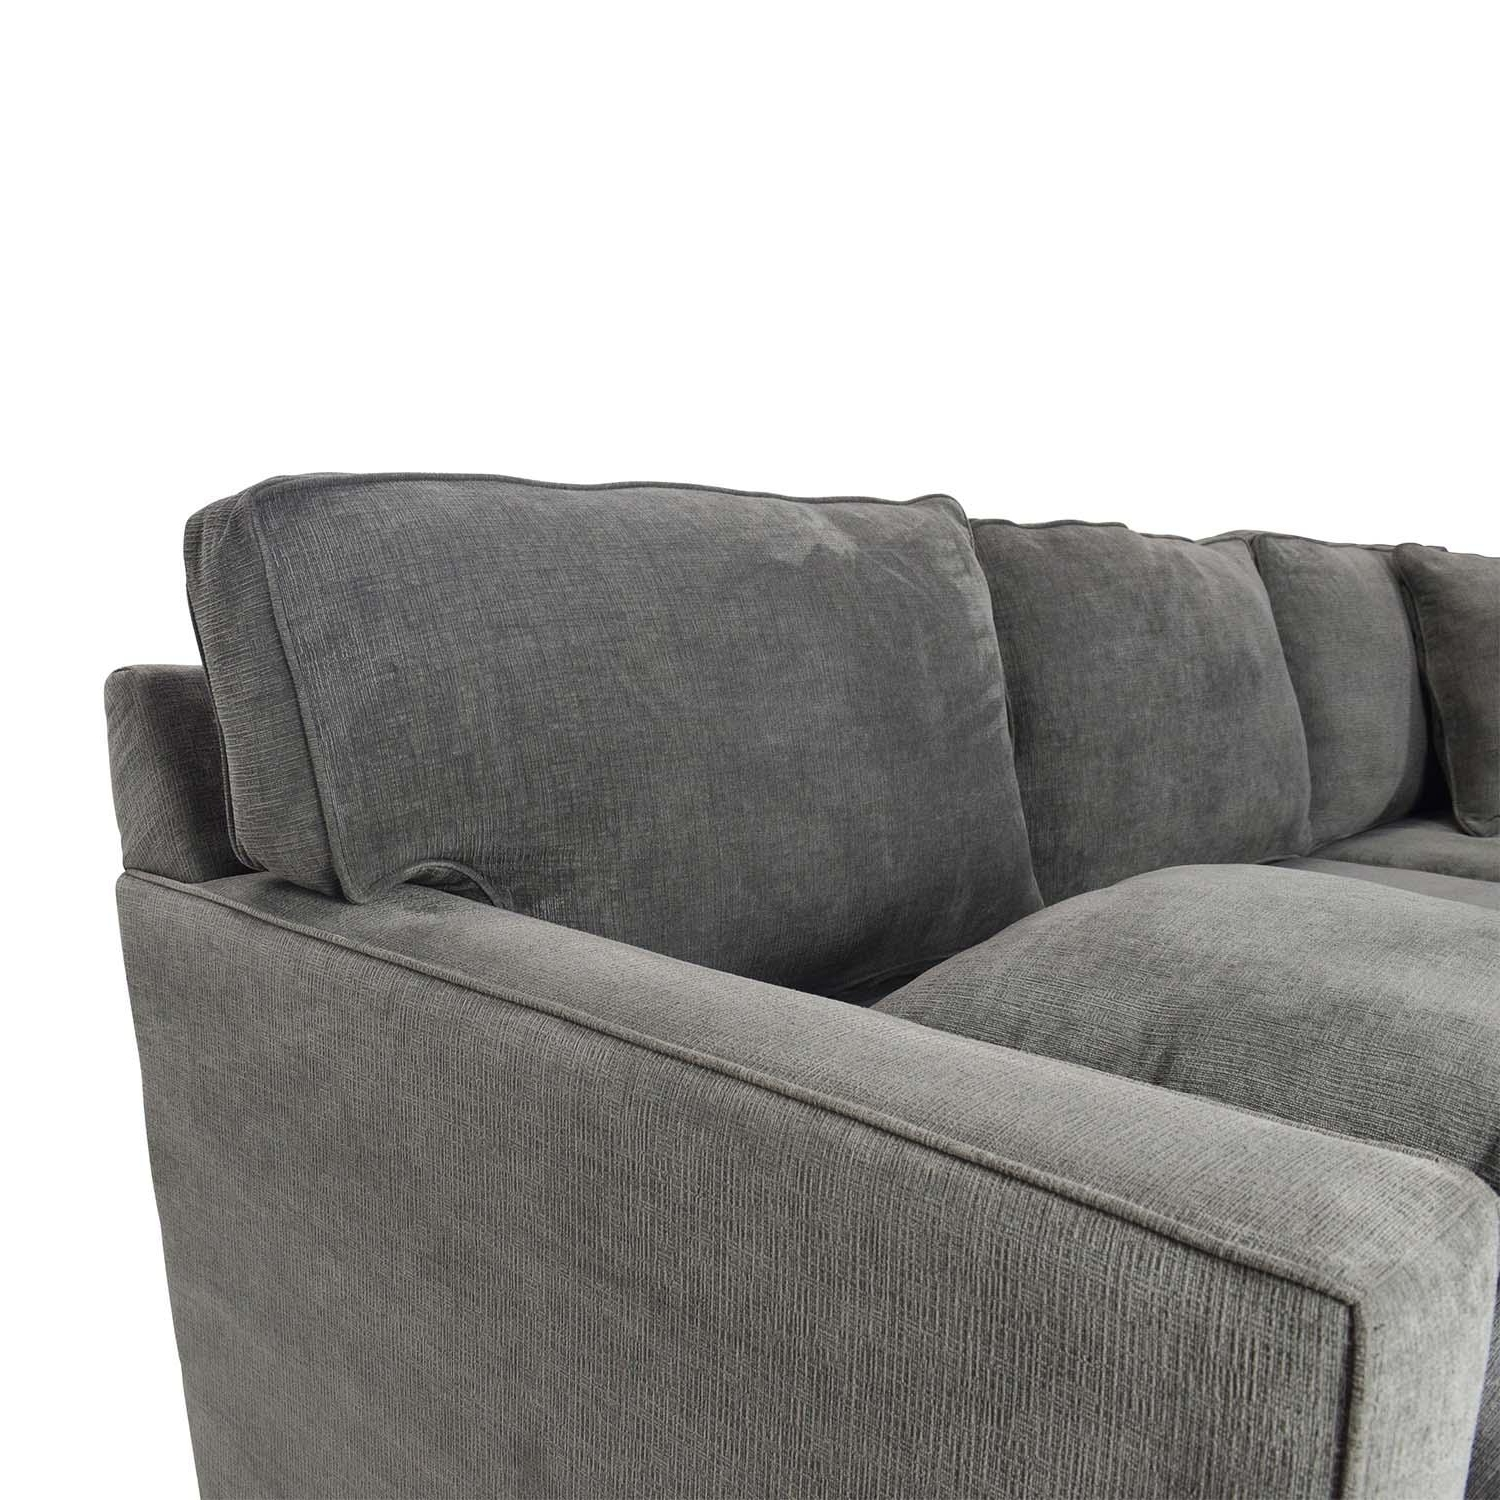 Well Known Furniture : Macys Couches Best Of F Macys Radley Sectional Sofa Regarding Macys Sofas (View 6 of 15)